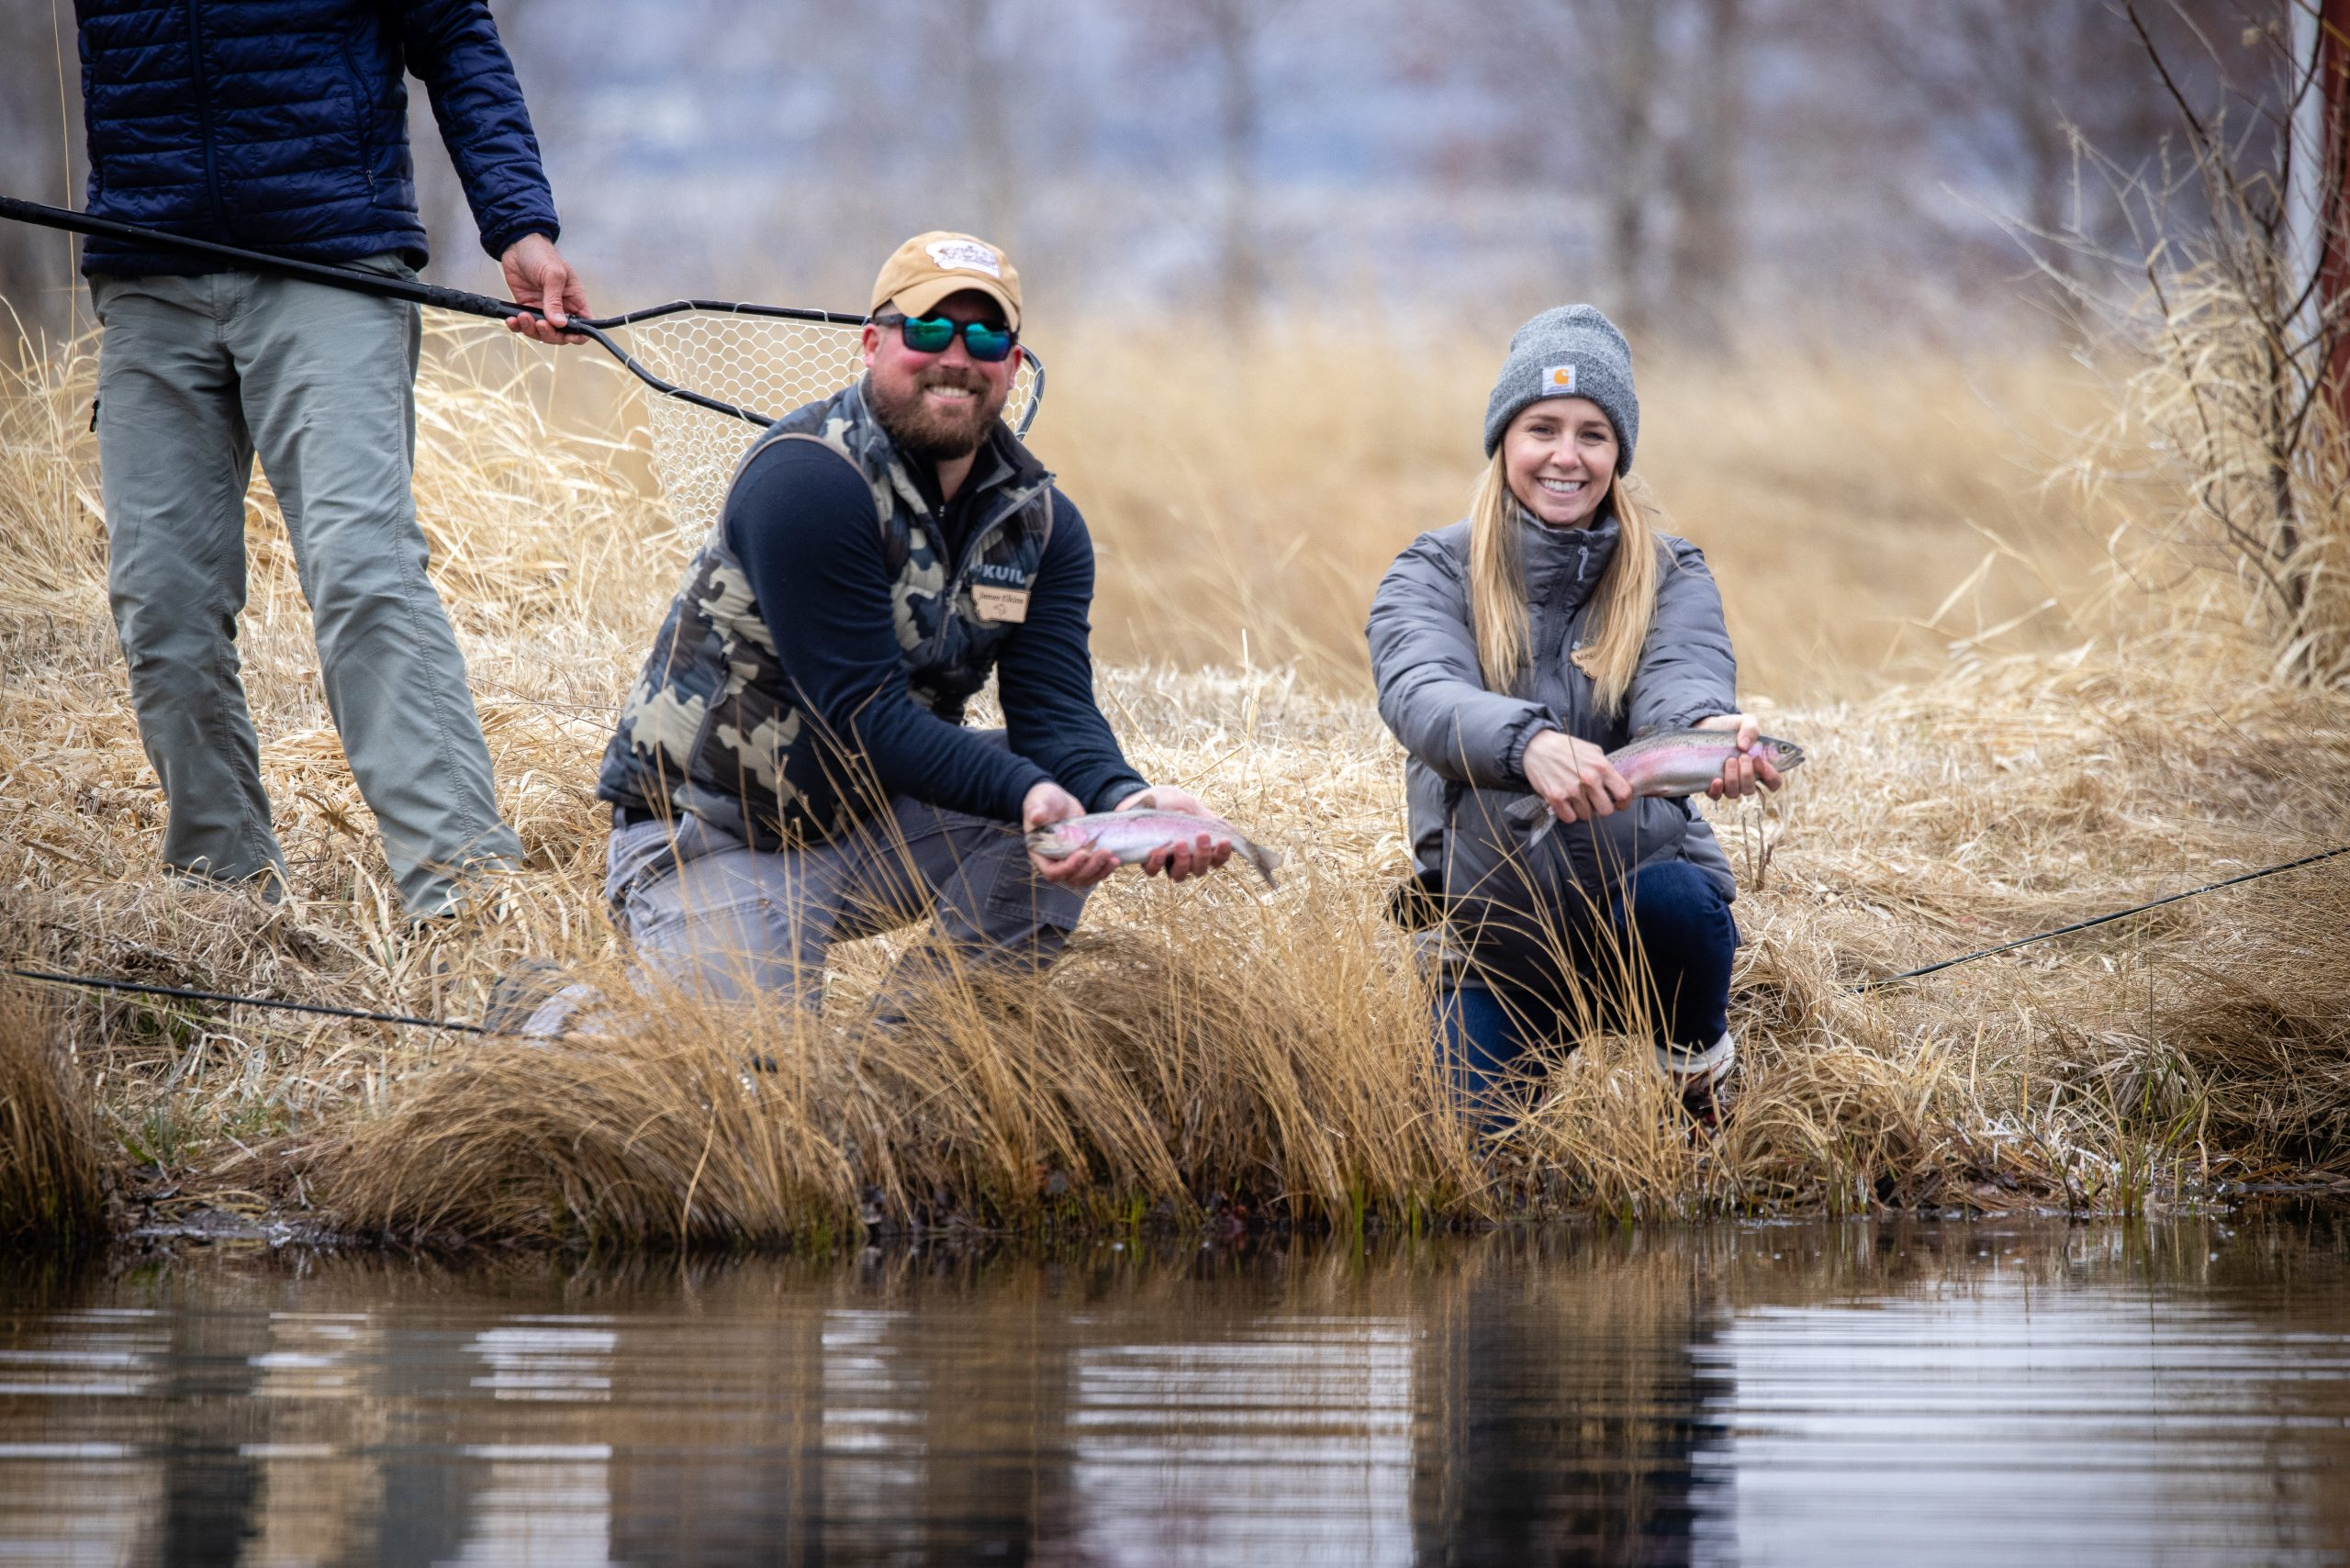 Watch a Veteran and Spouse Fishing Experience